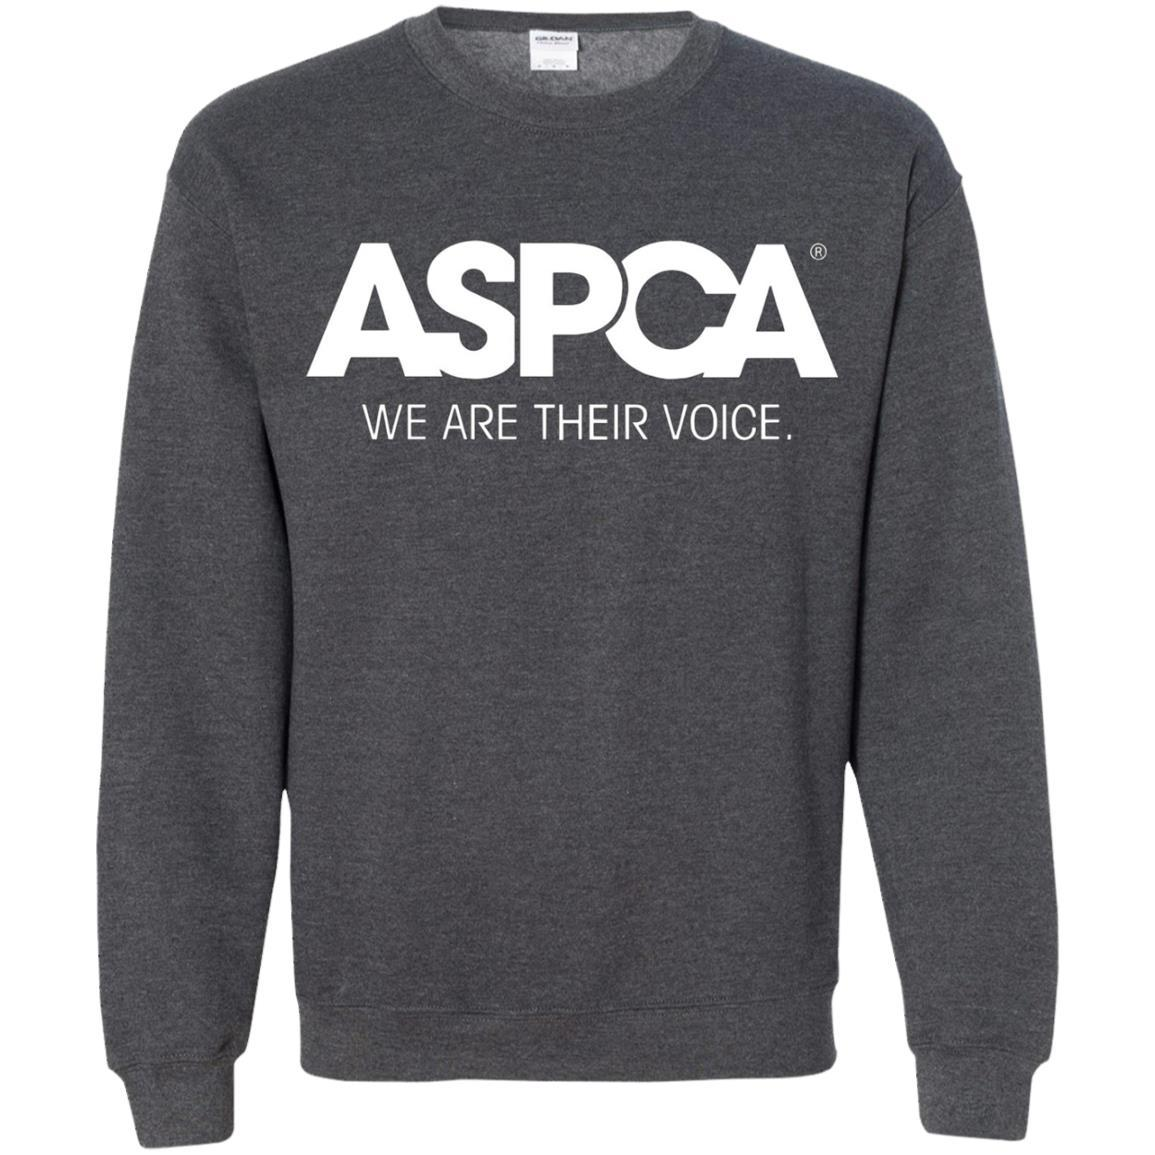 ASPCA Apparel - Crewneck Pullover Sweatshirt Dark Heather / 5XL